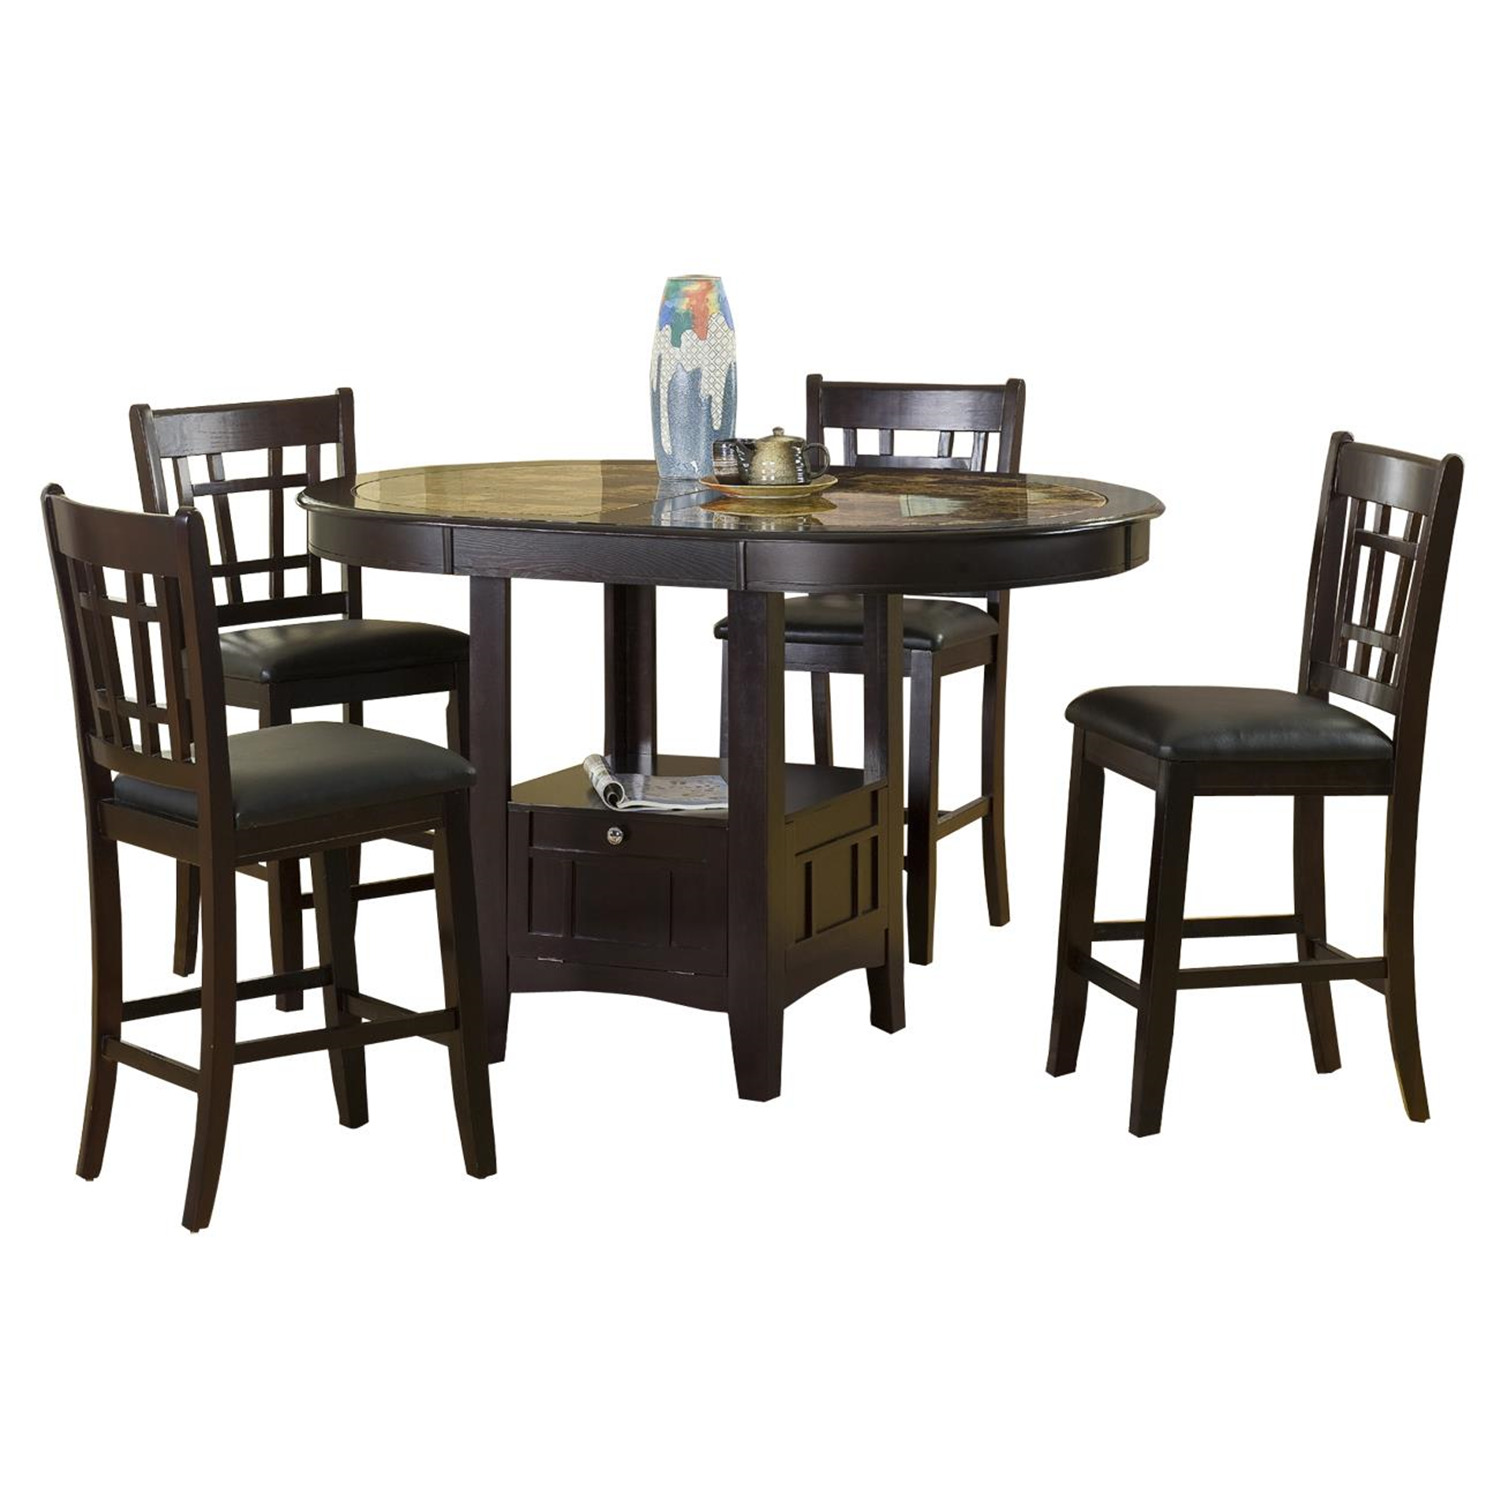 Home source pub table 2 chair set by oj commerce for 99 pub table